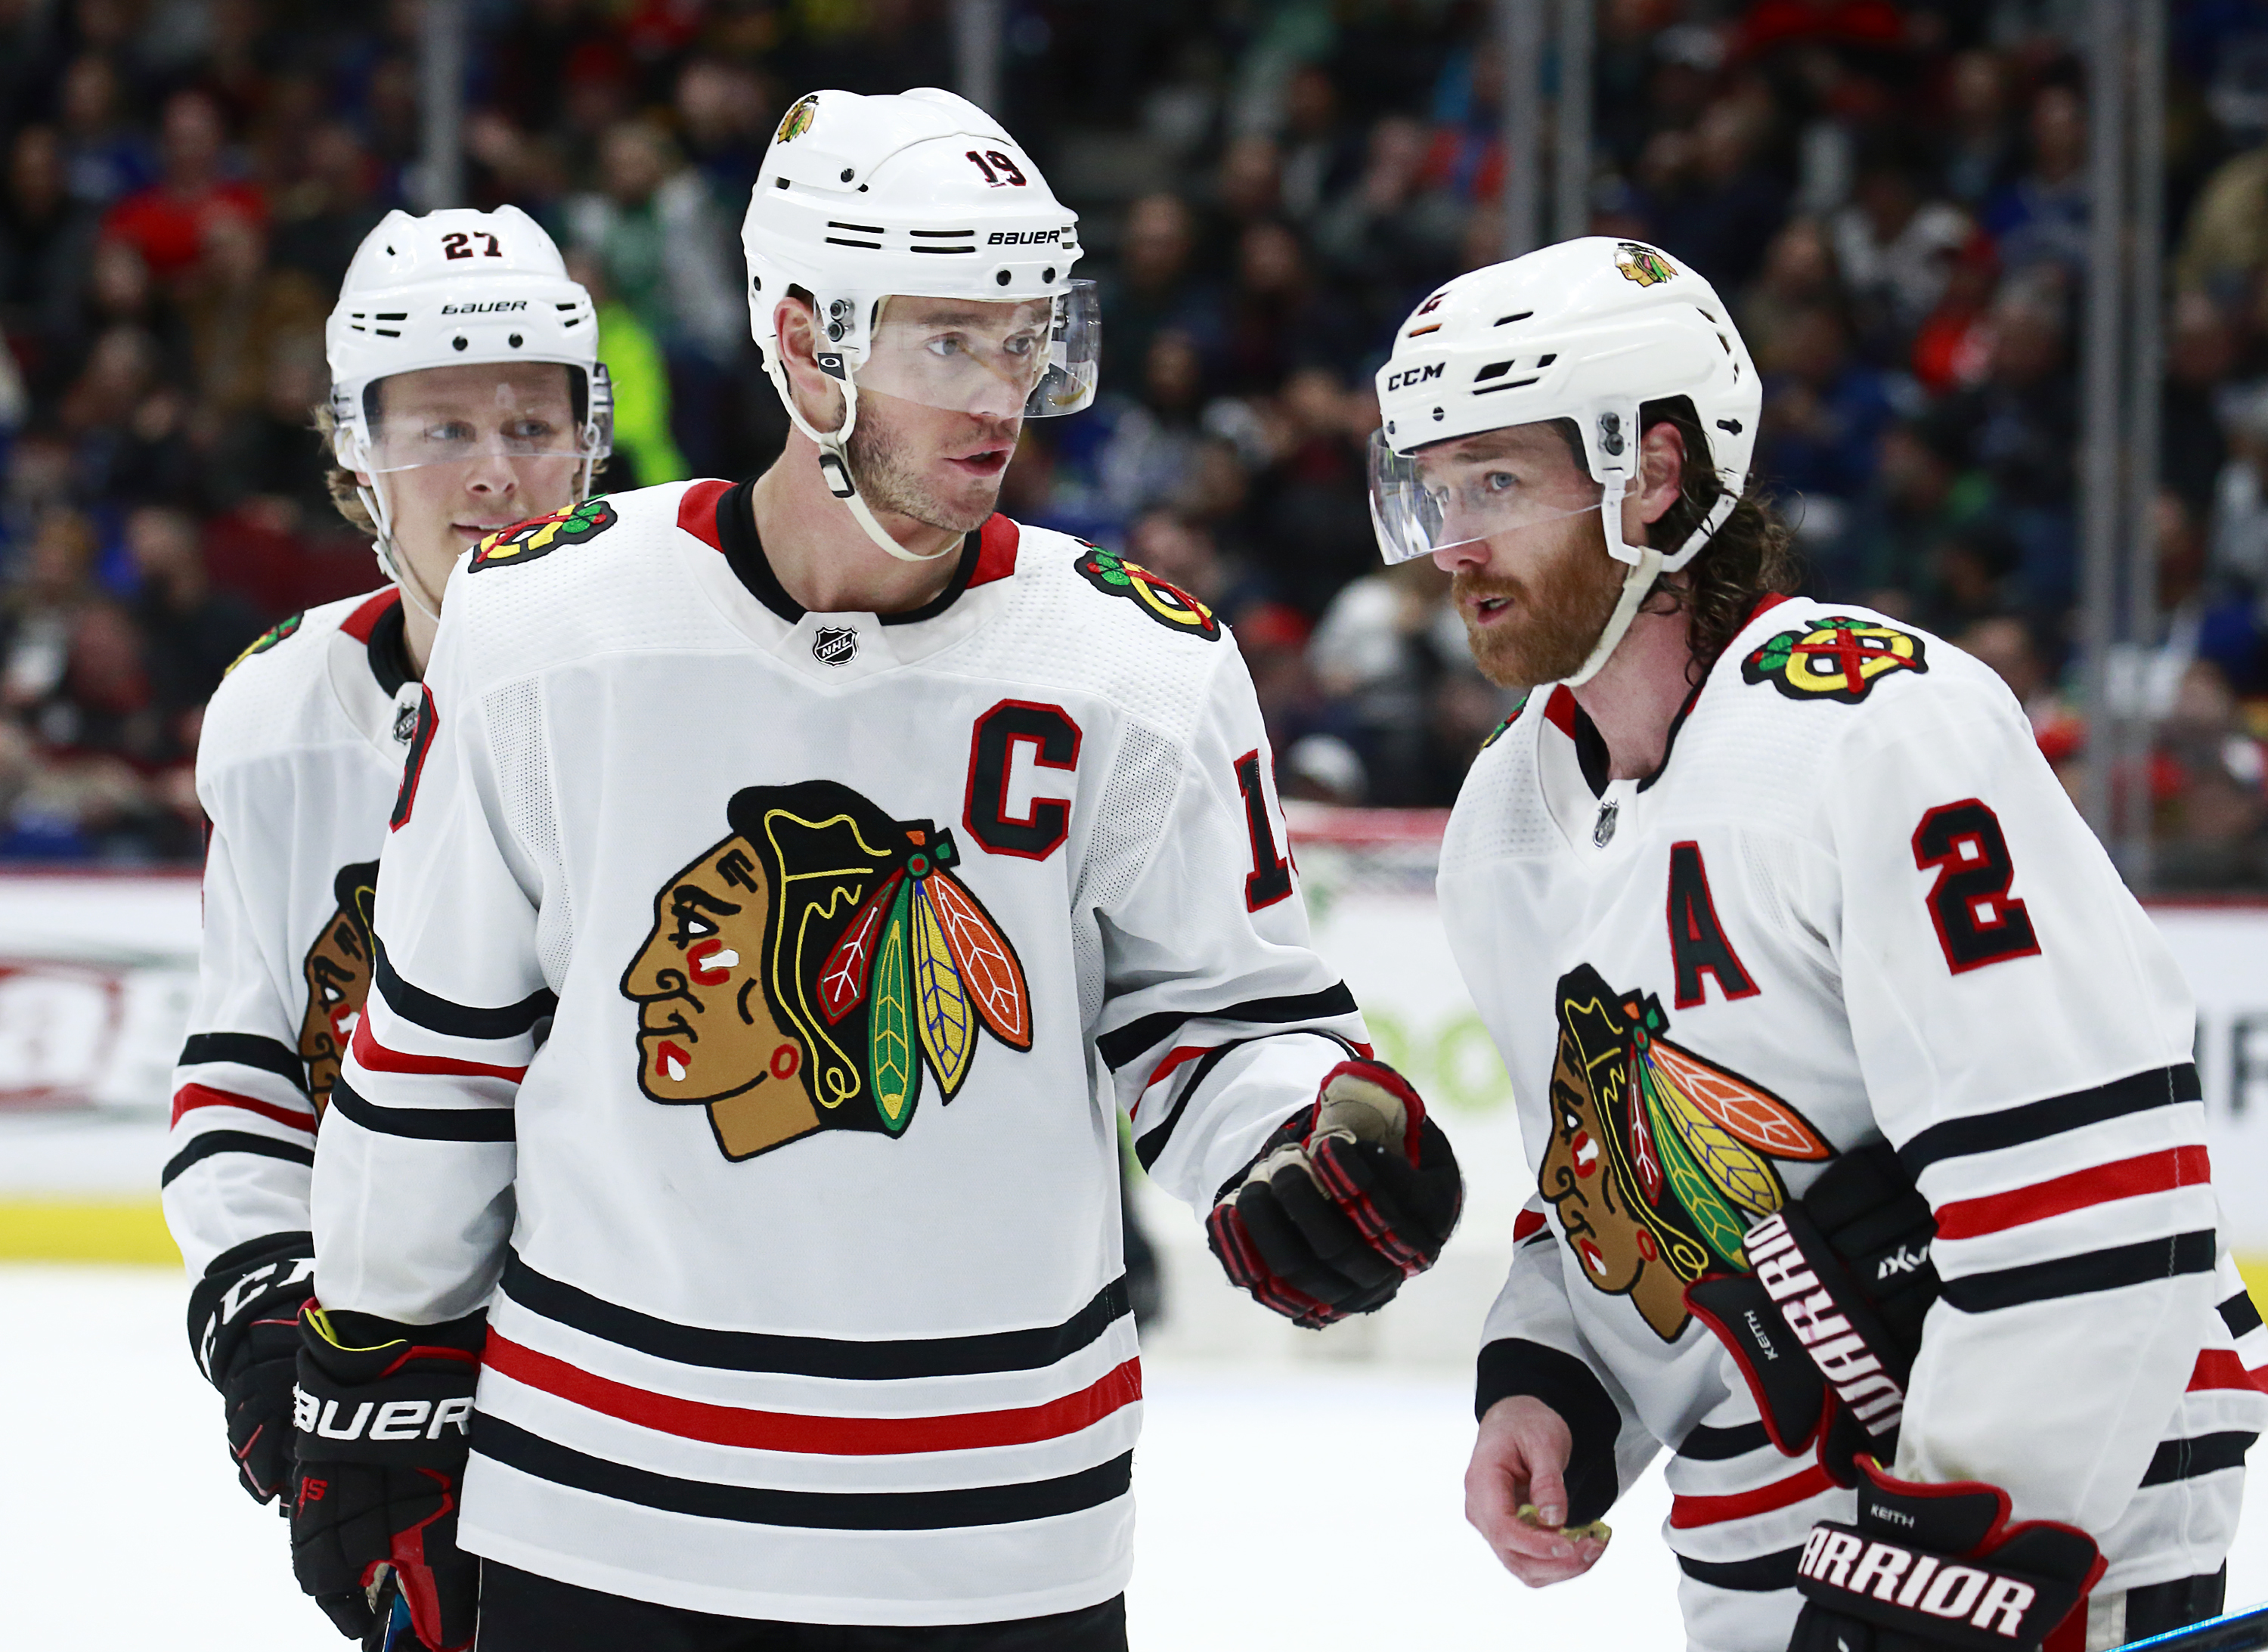 Blackhawks to Face Oilers in Play-In Series as Part of NHL's Plan to Resume Play